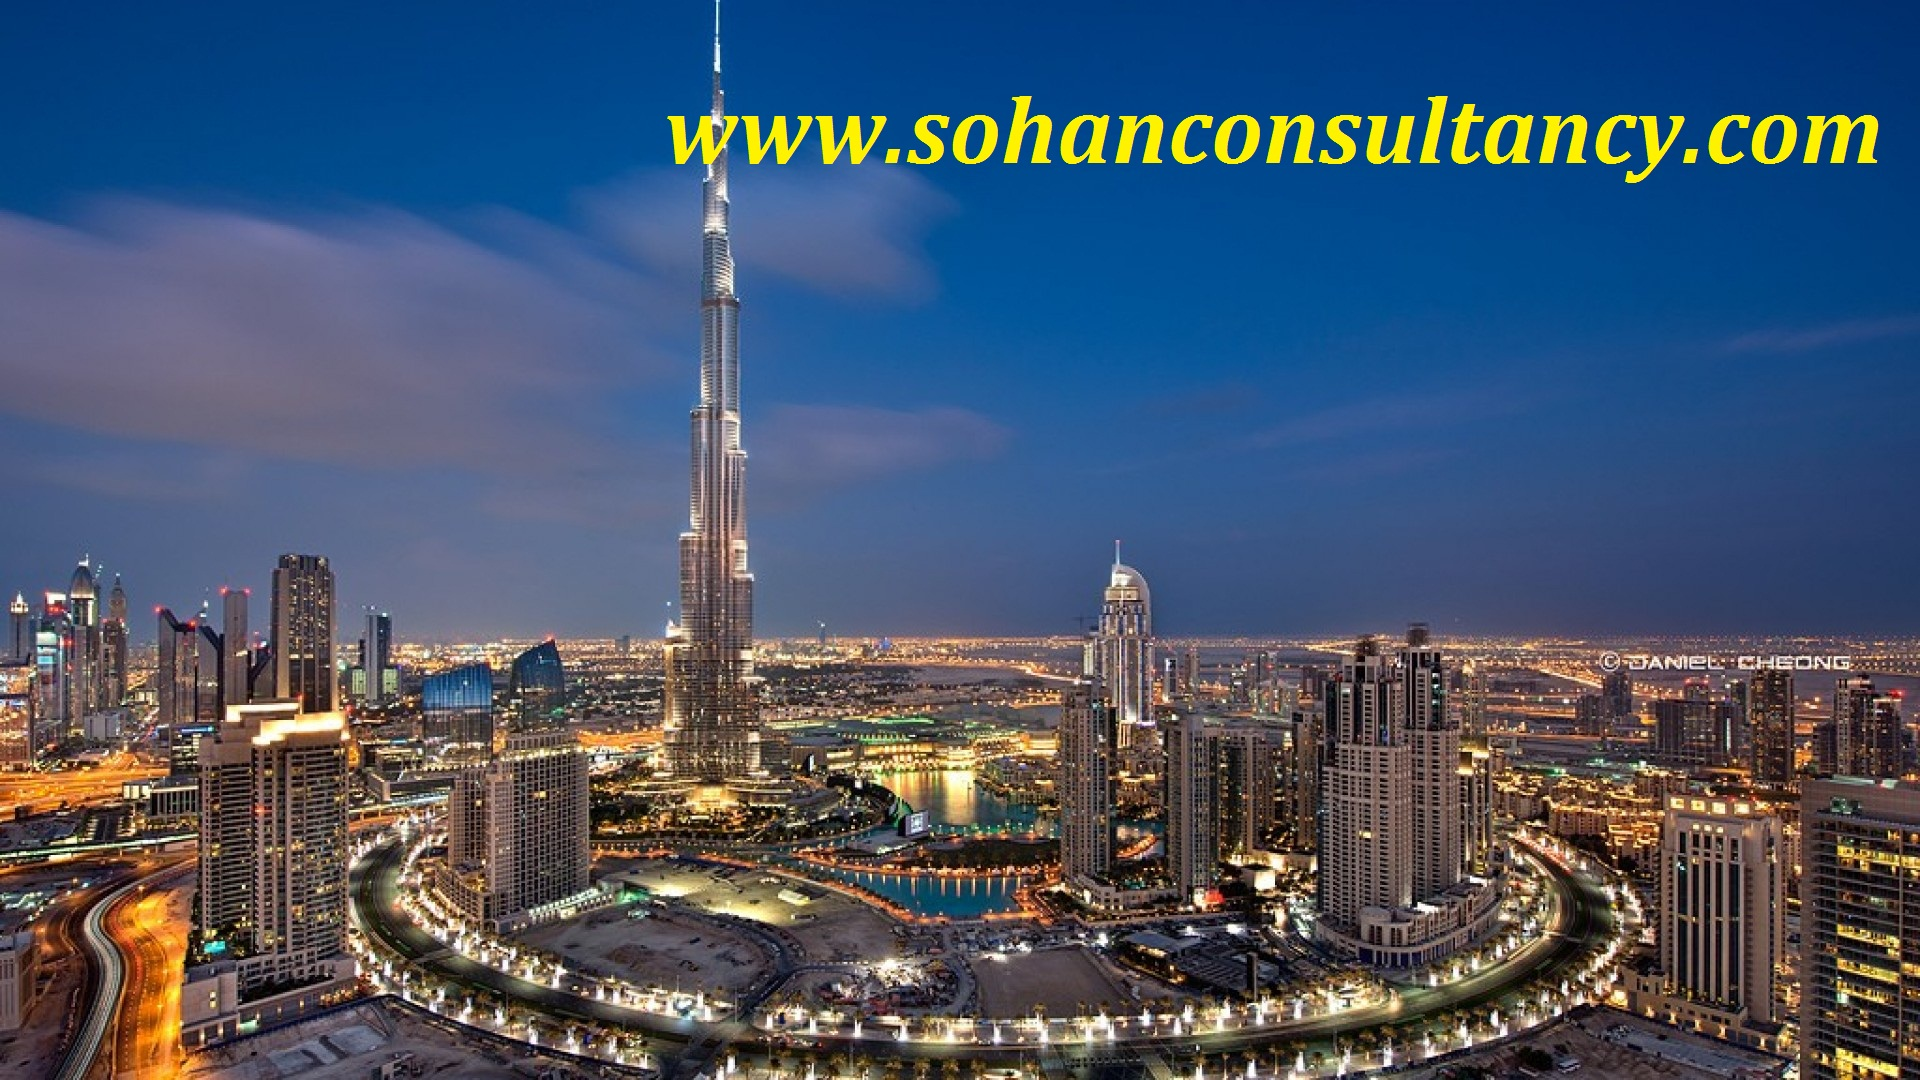 Business-Setup-in-Dubai-sohanconsultancy-com-Free-Zone-Company-Registration-The-wallpaper-wp3403566